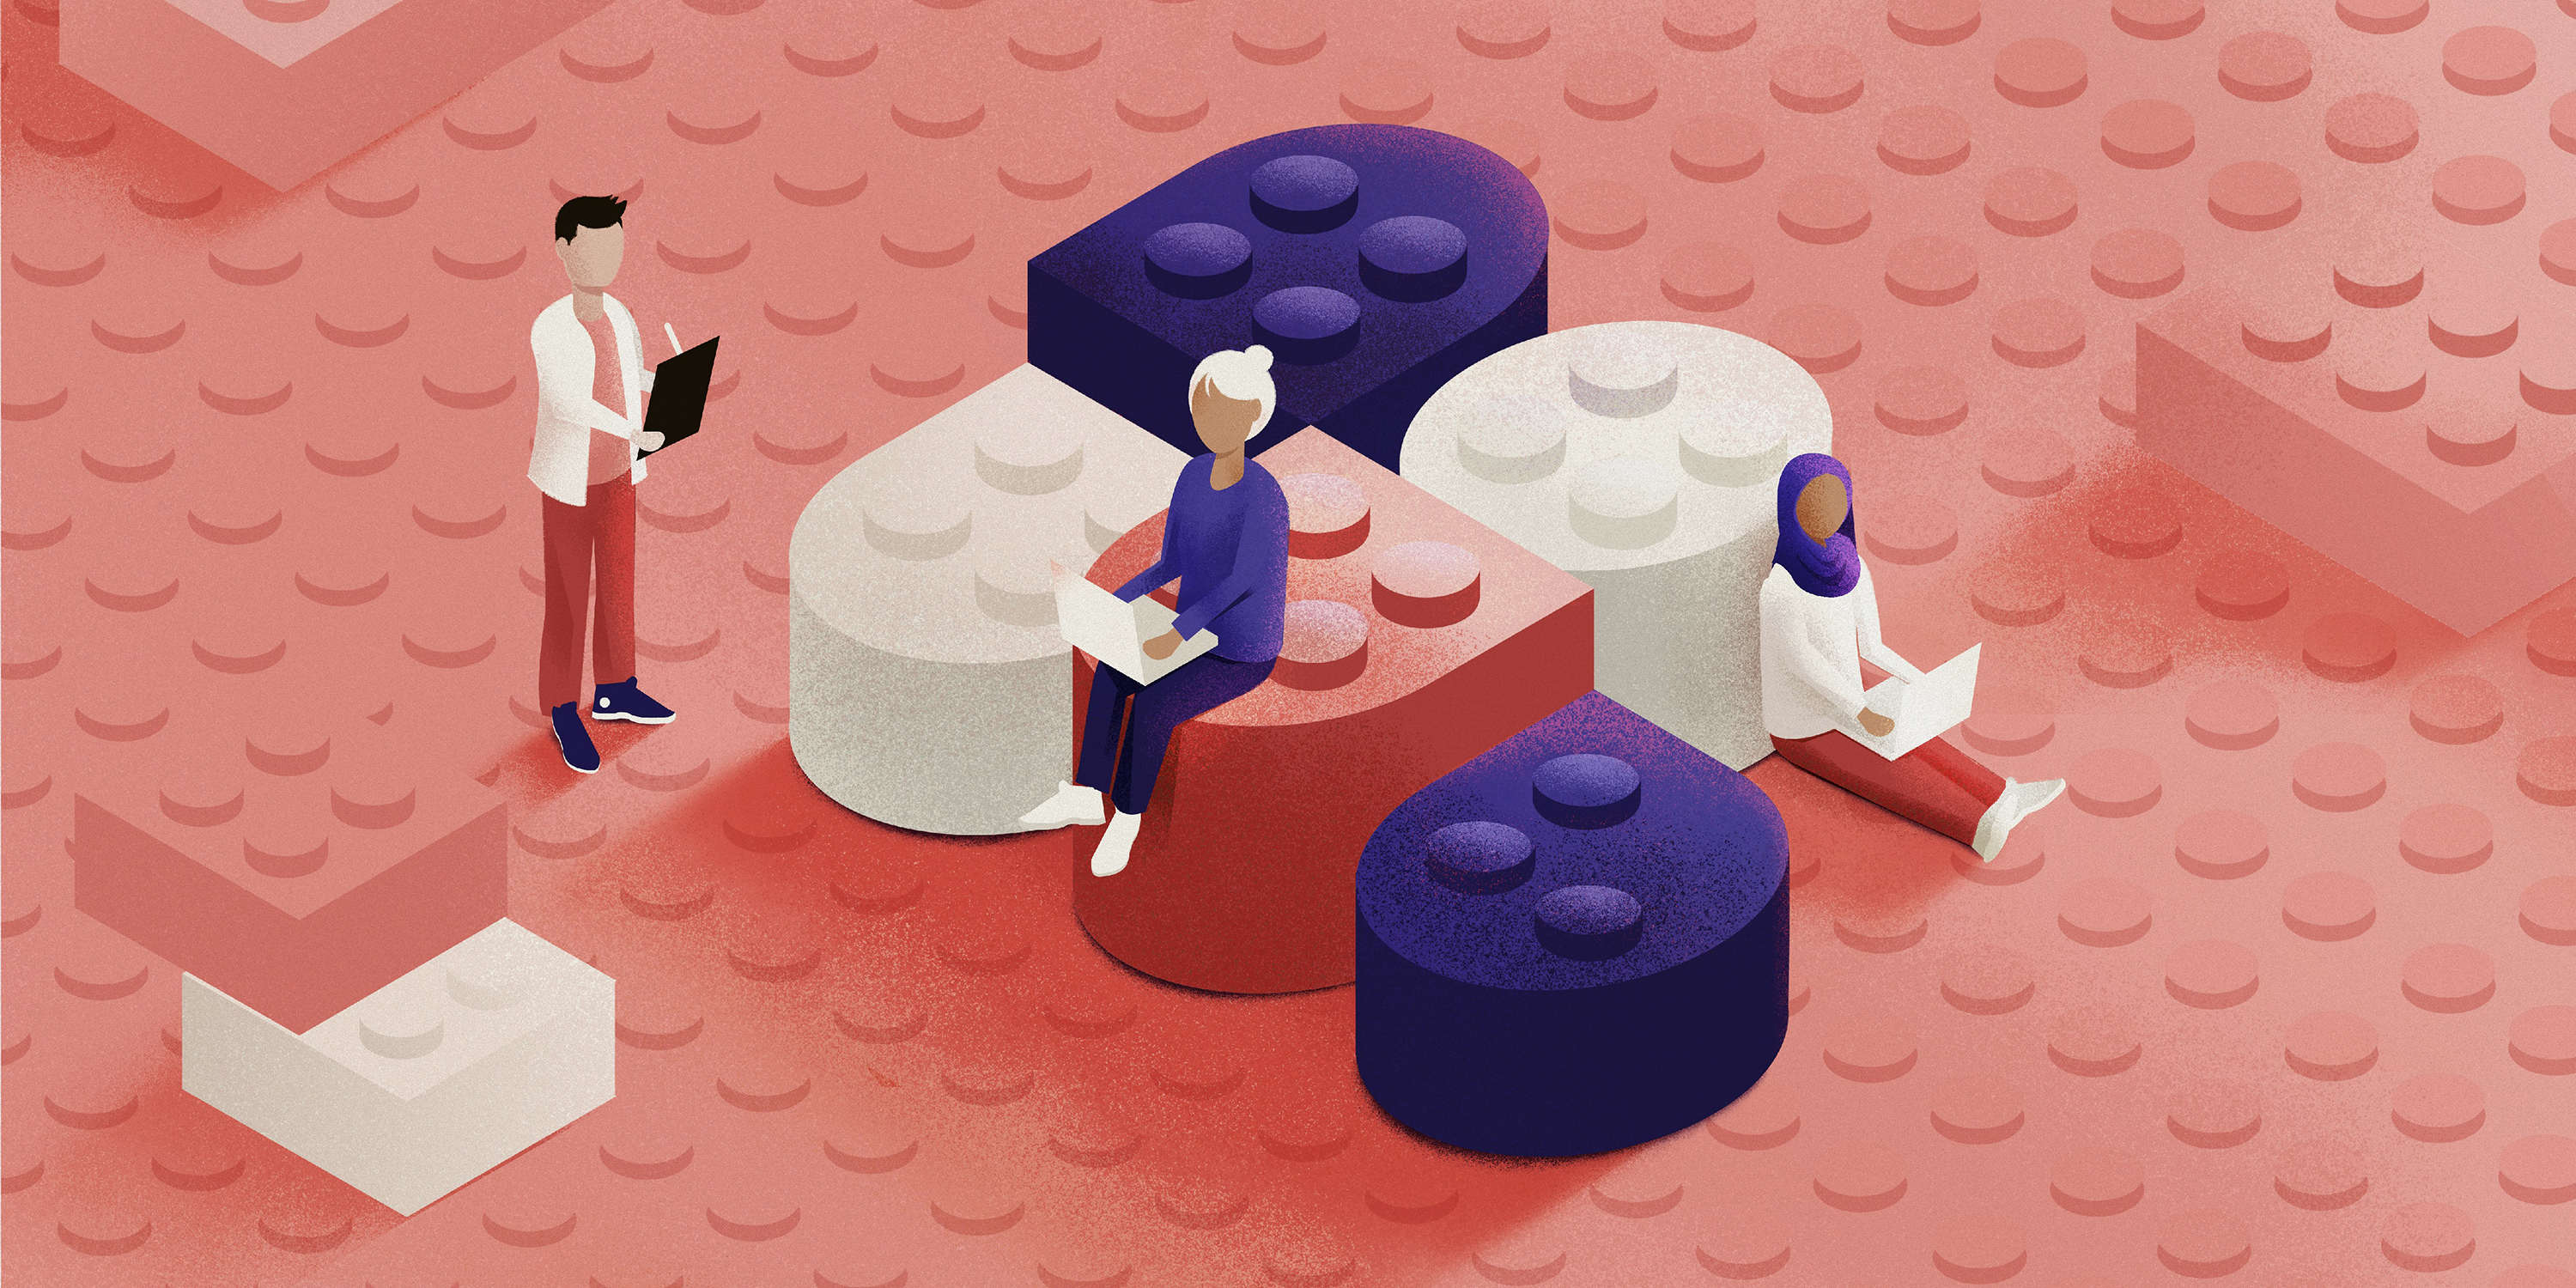 An illustration showing a series of building blocks stacked together. Three people sit among the building blocks, working on their laptops.